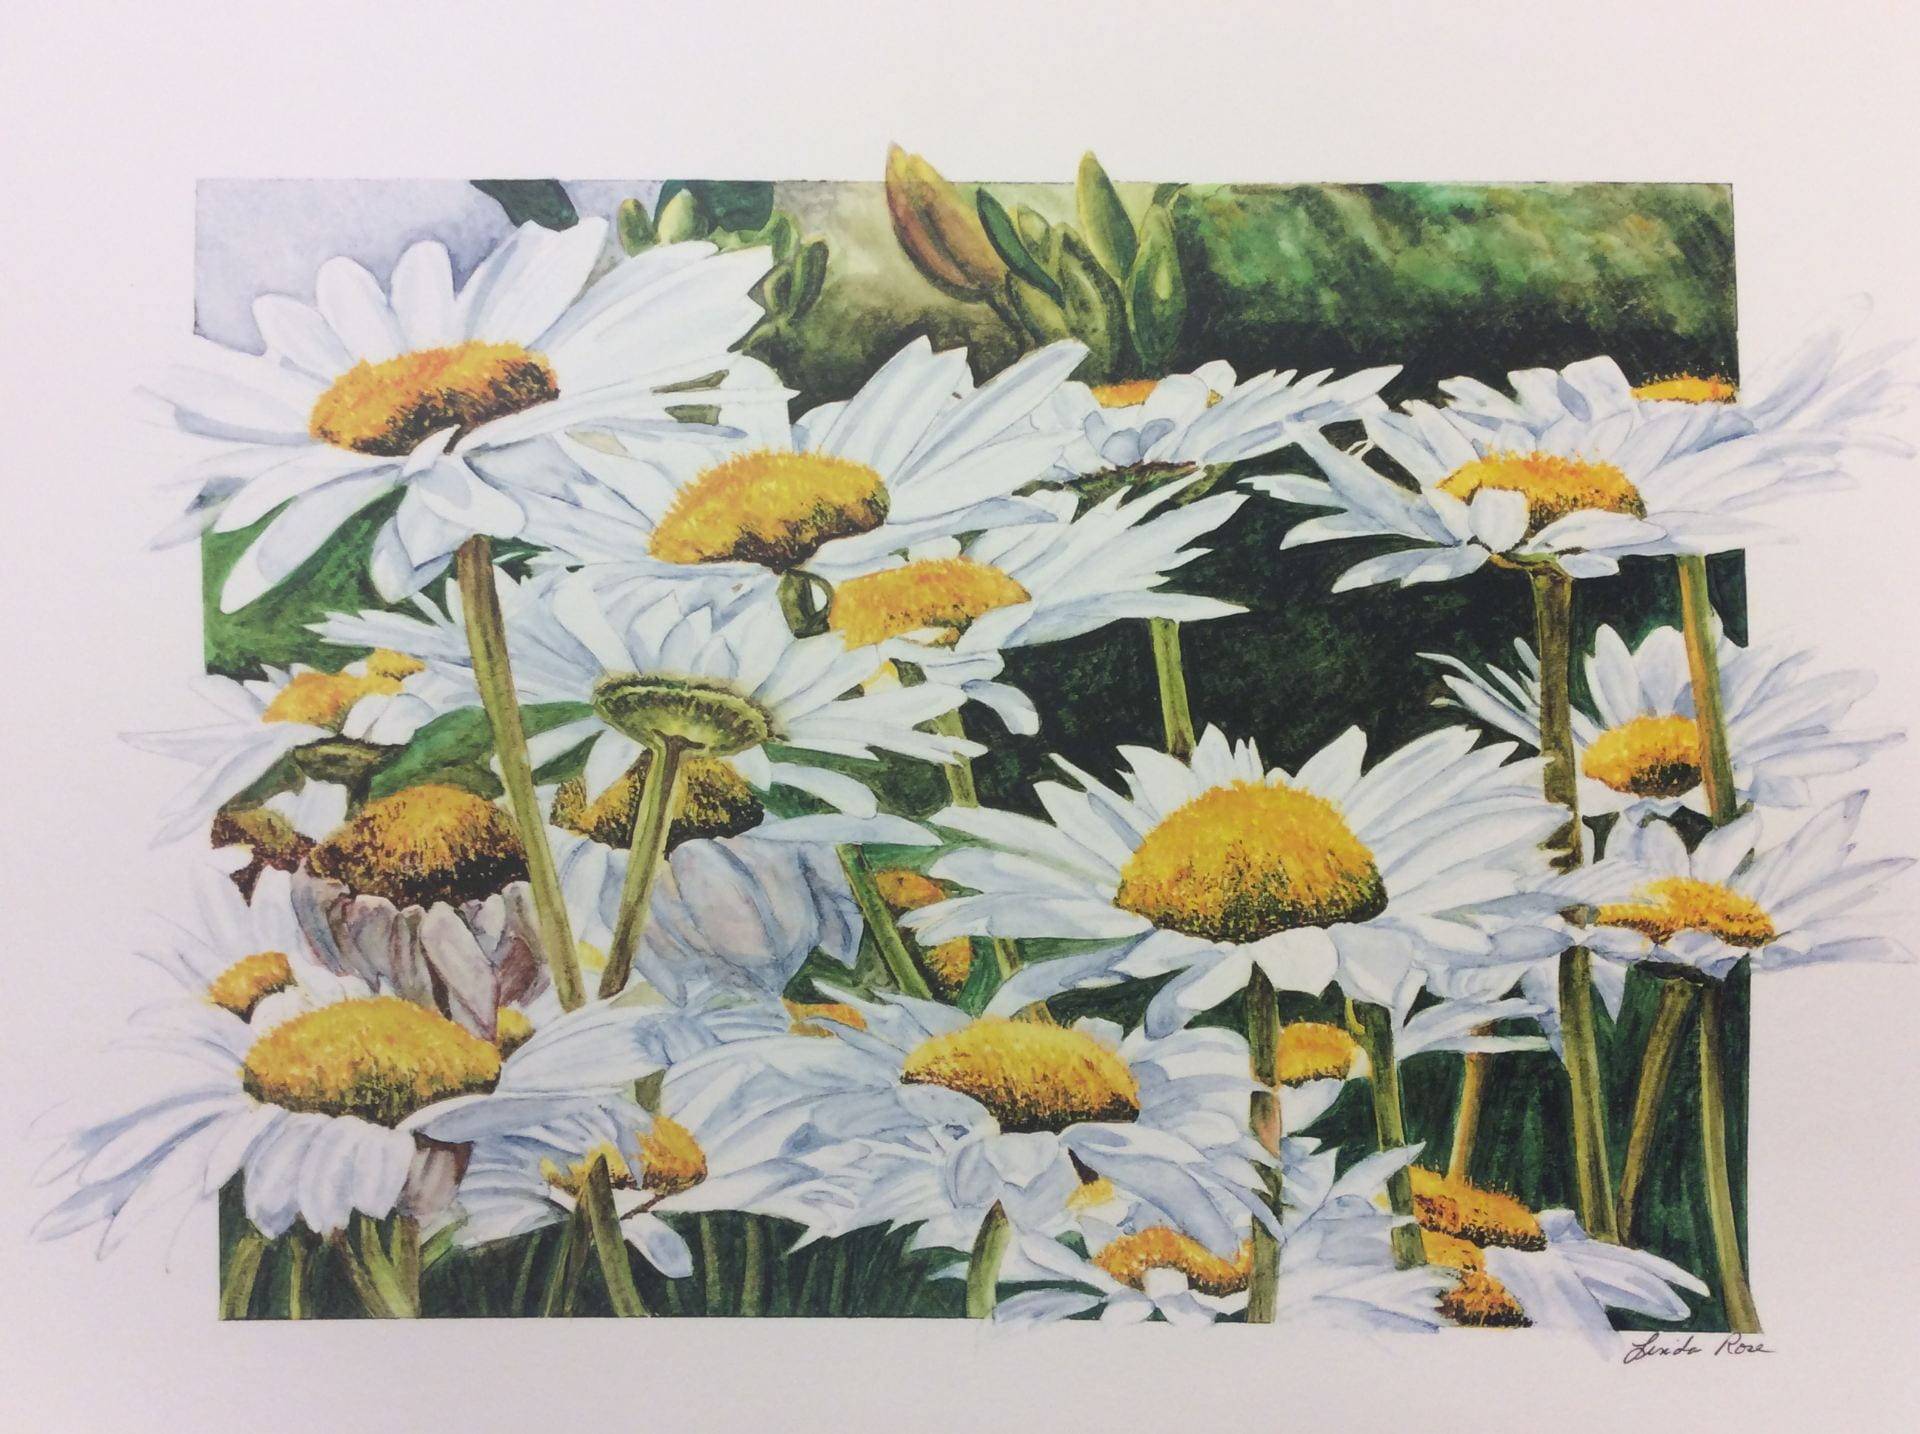 Painting by Linda Rose titled Field of Daisies